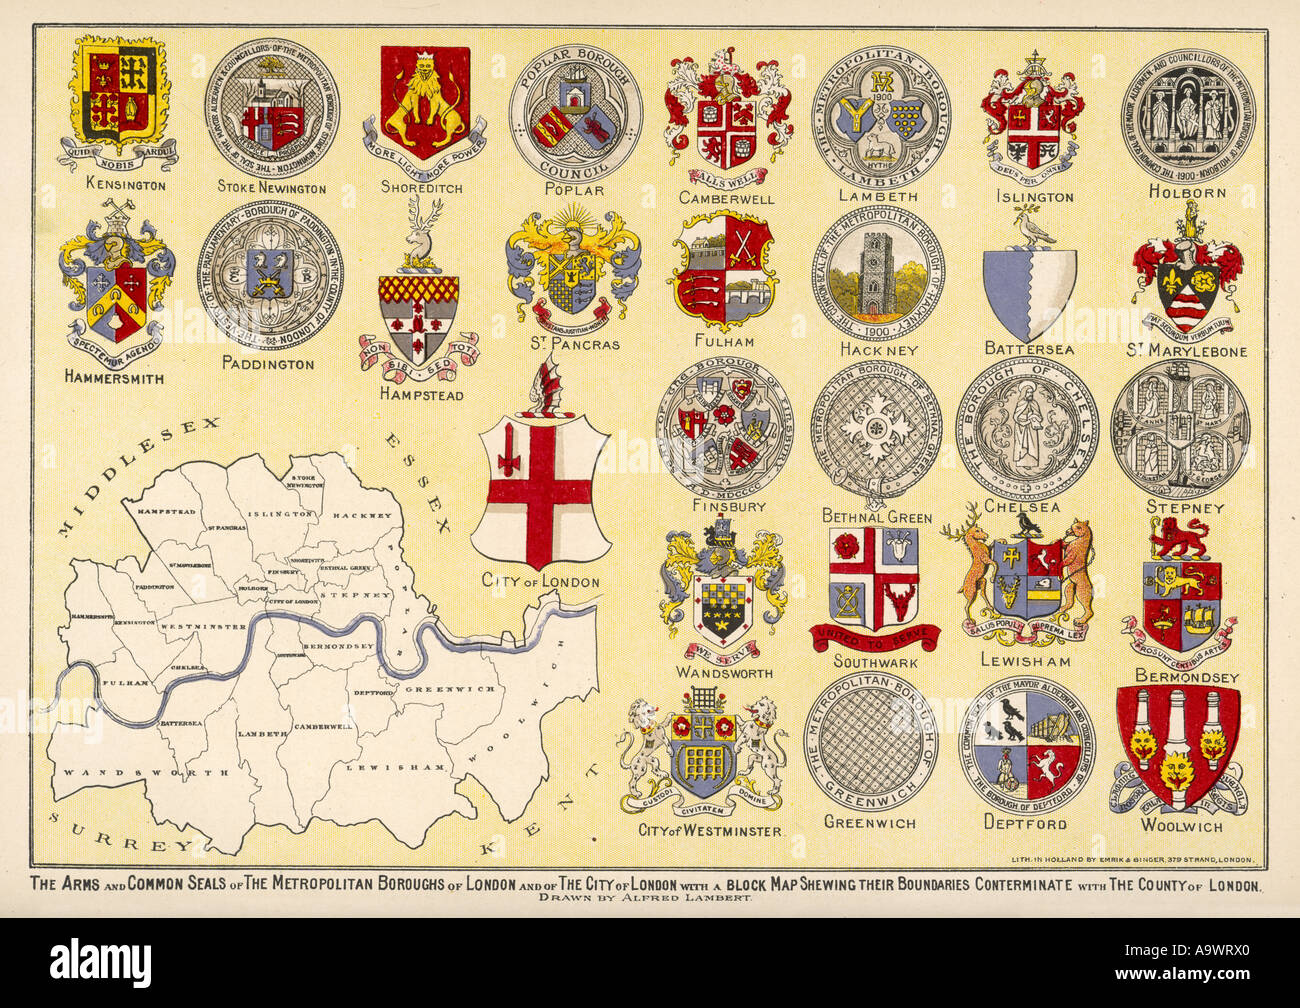 London Arms Seals - Stock Image